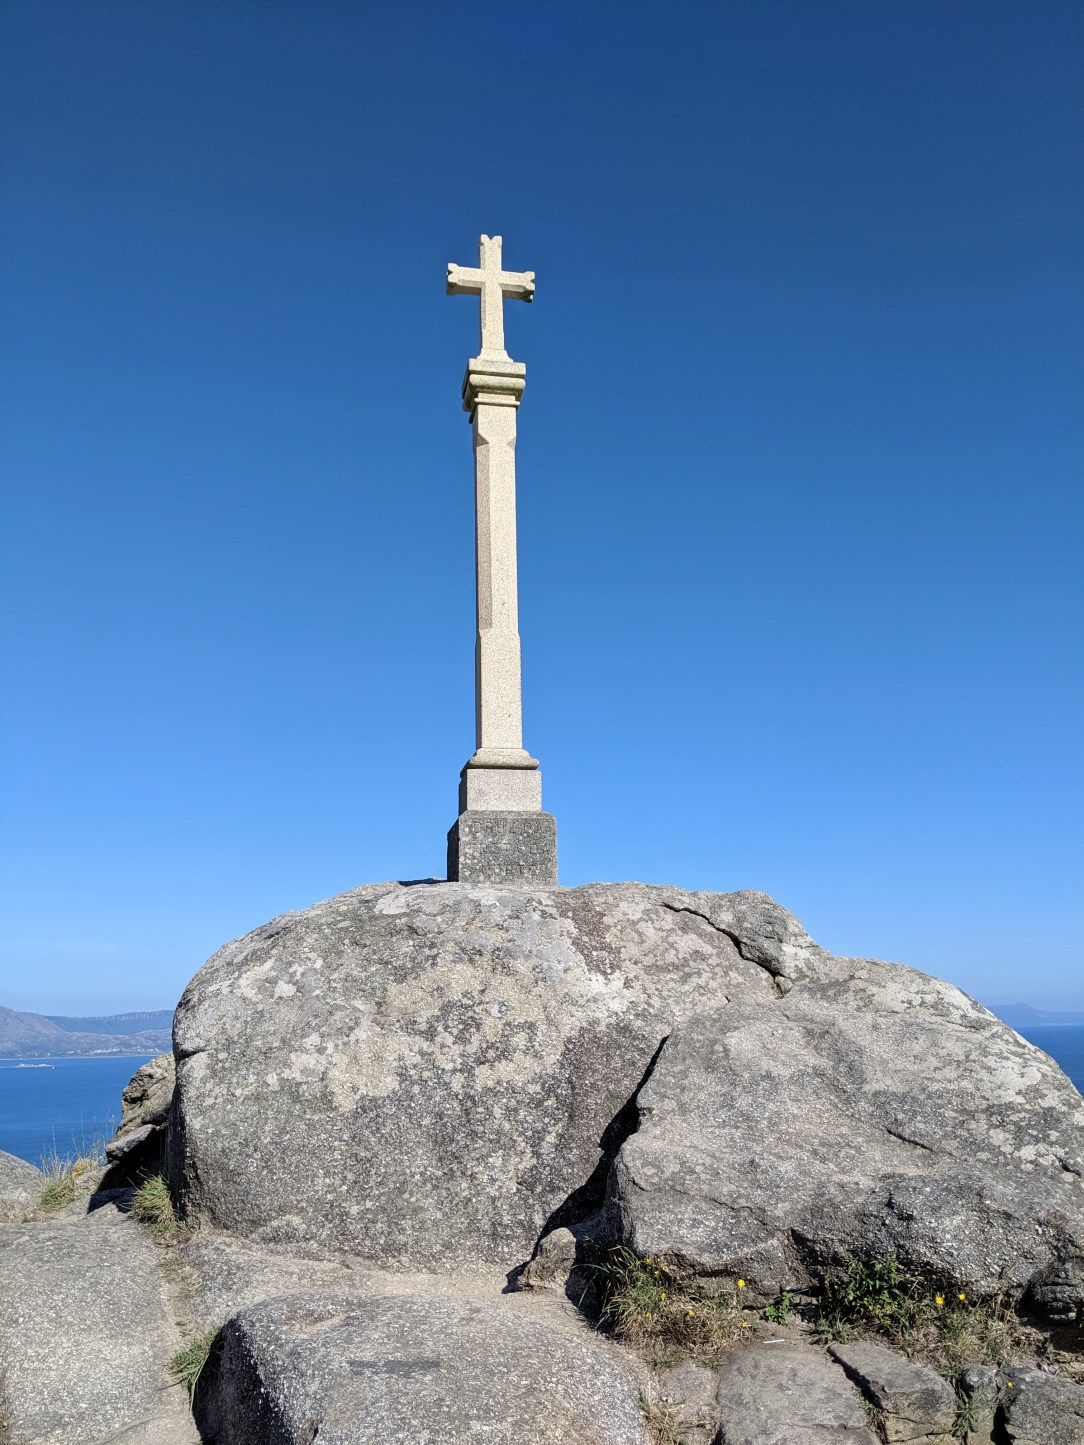 Muxia, Death Coast, Spanish coast, cross, El Camino de Santiago